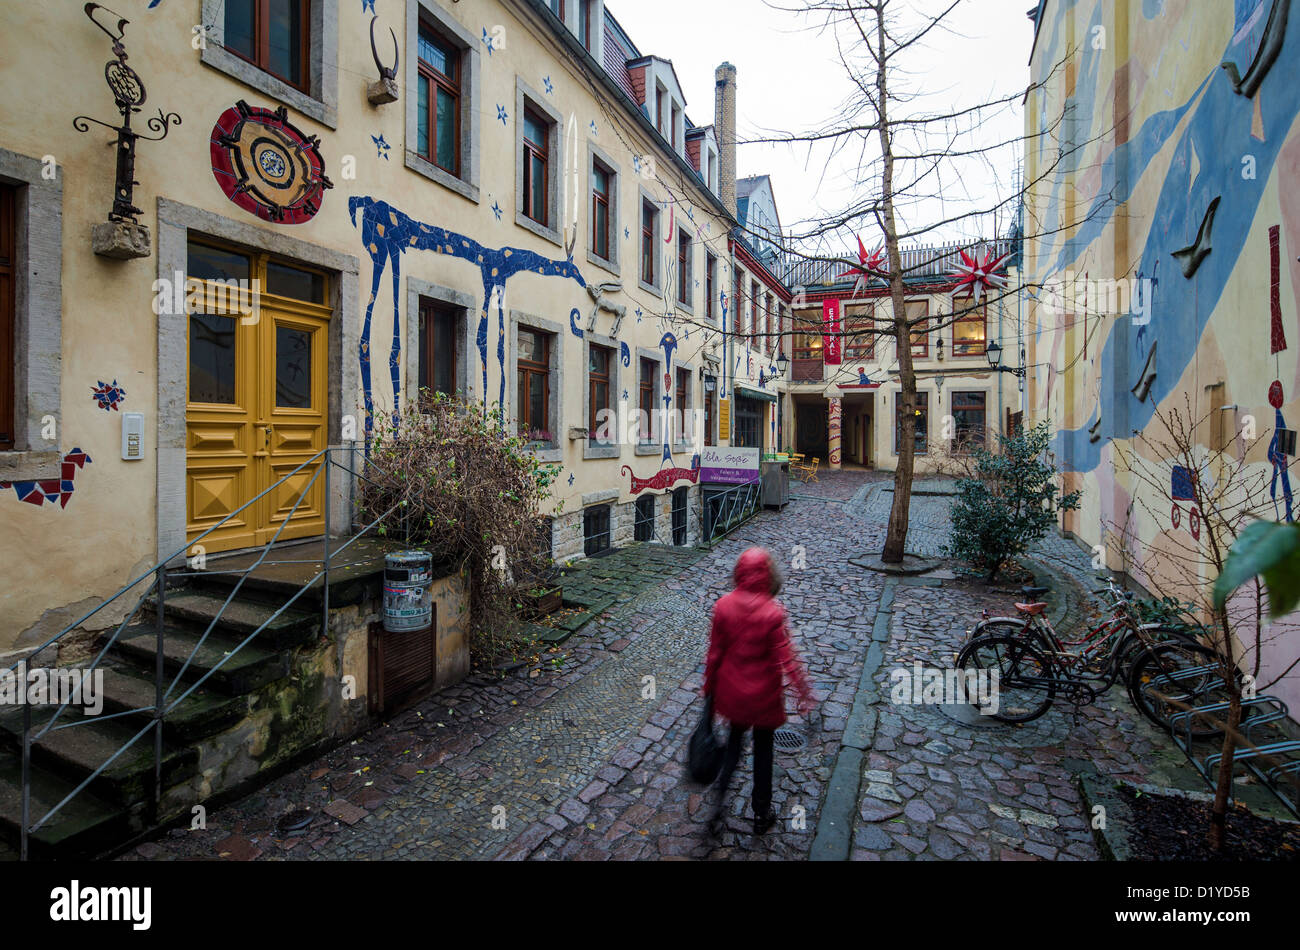 A view at a richly decorated back alley of an arts initiative in the Neustadt district of Dresden, Germany, 7 January - Stock Image